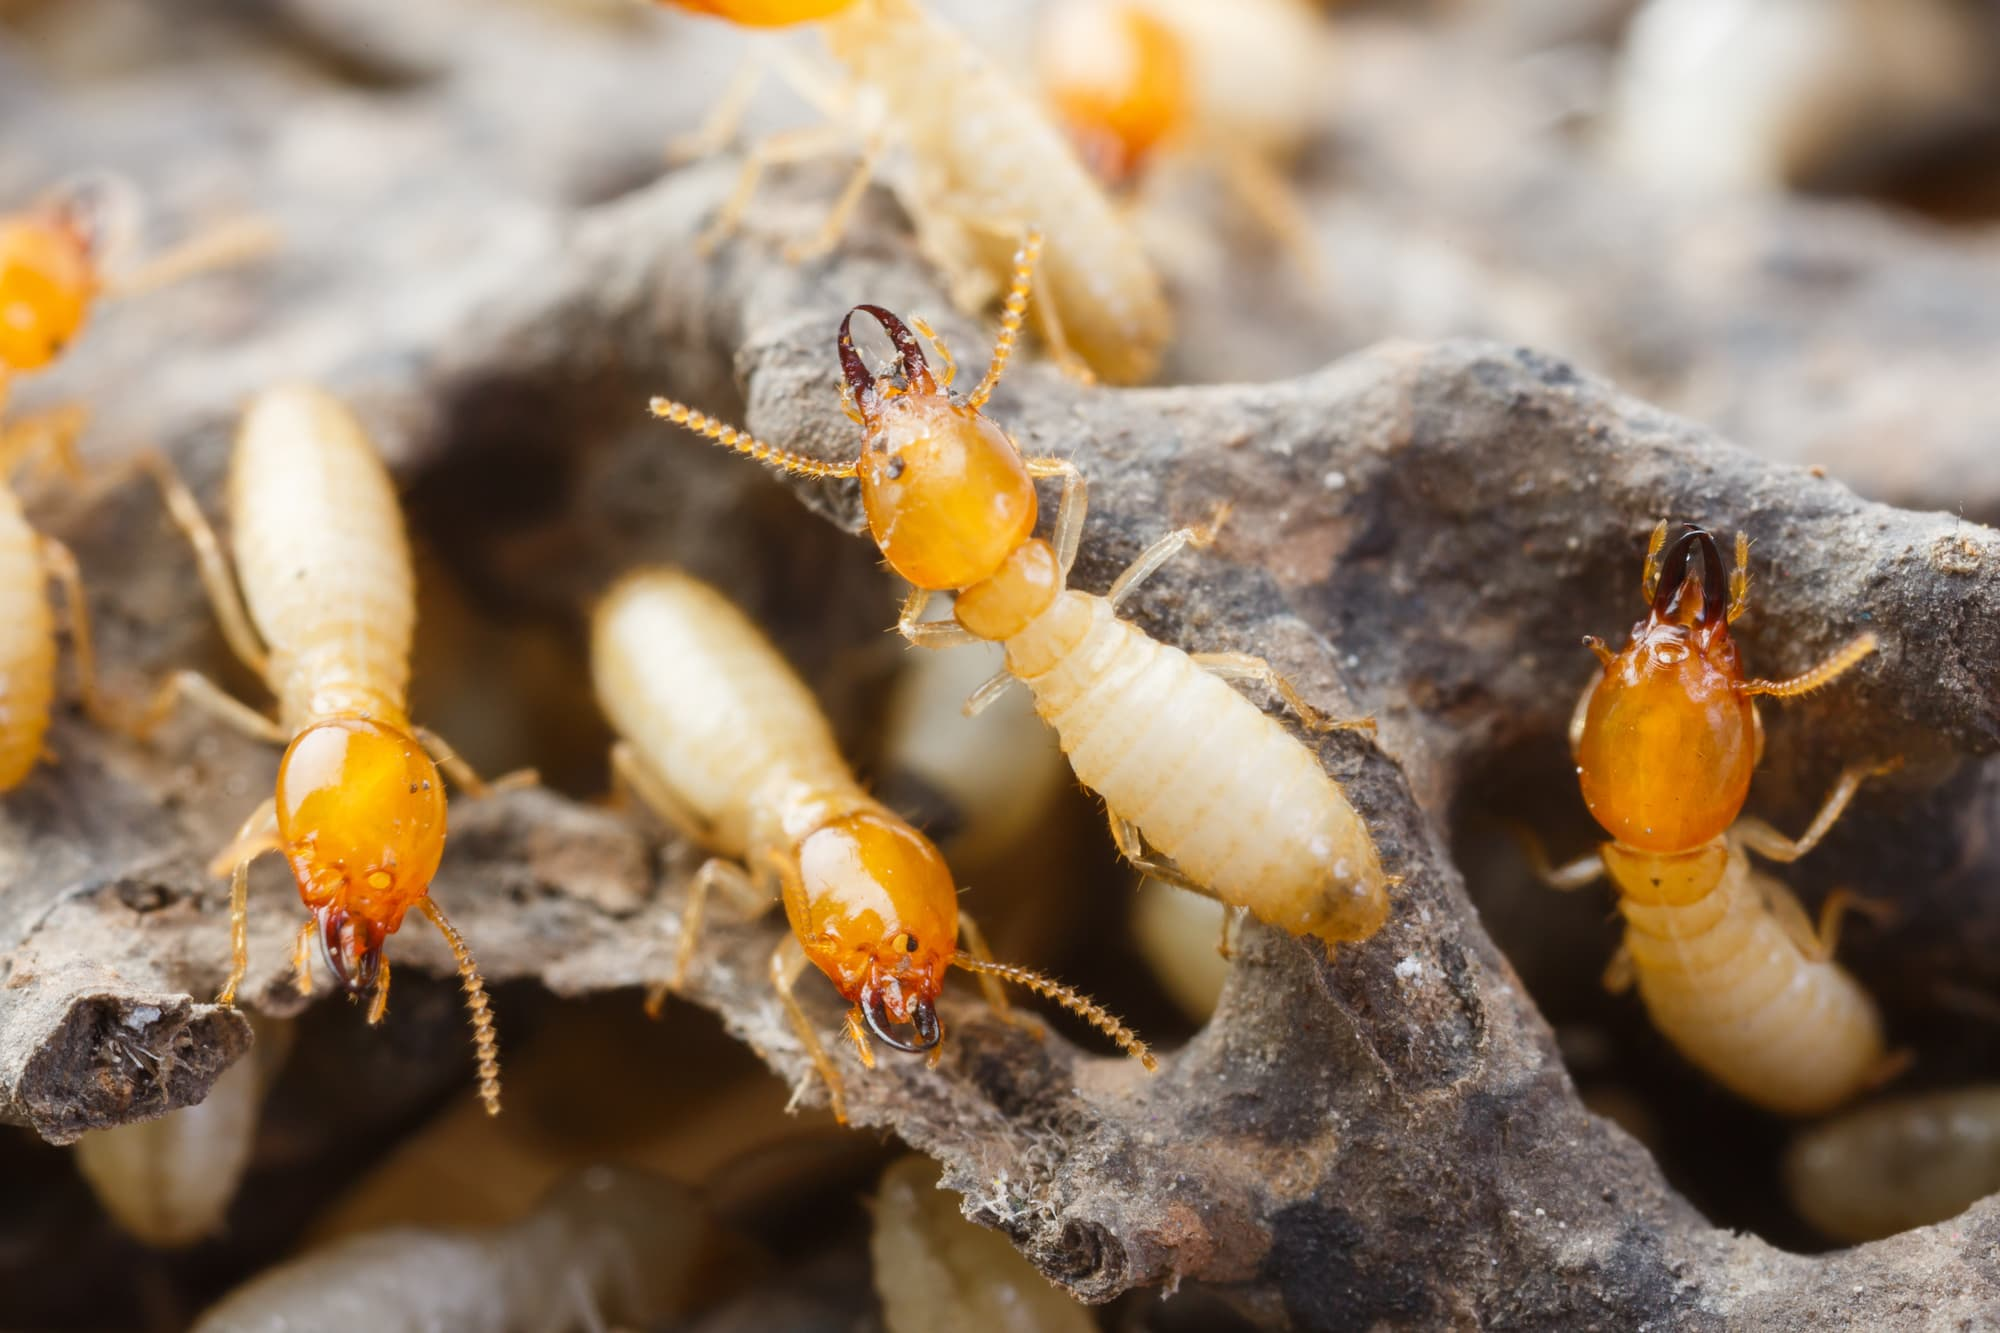 Termite control - Termites can go undetected for years causing serious damage to homes & businesses. Treatments can be applied as a preventative measure, or for remediation.